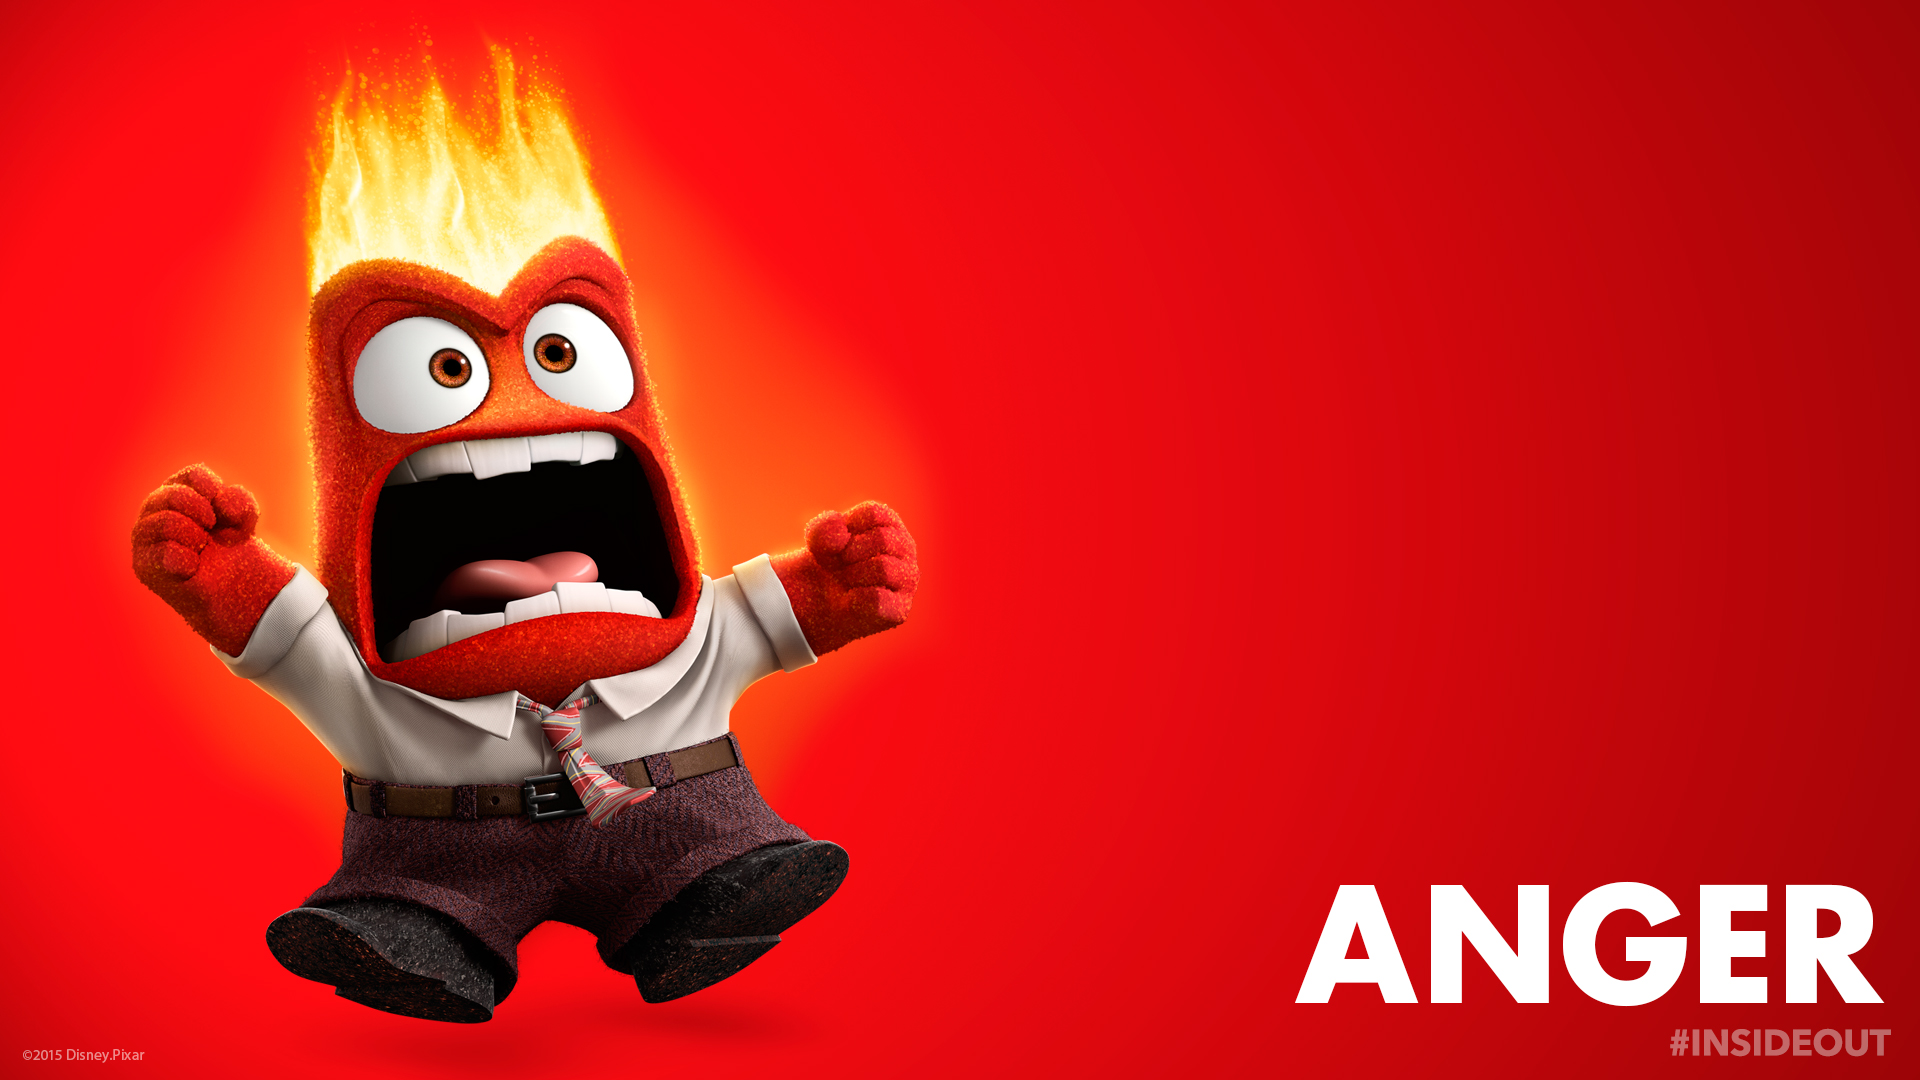 inside out Anger wide